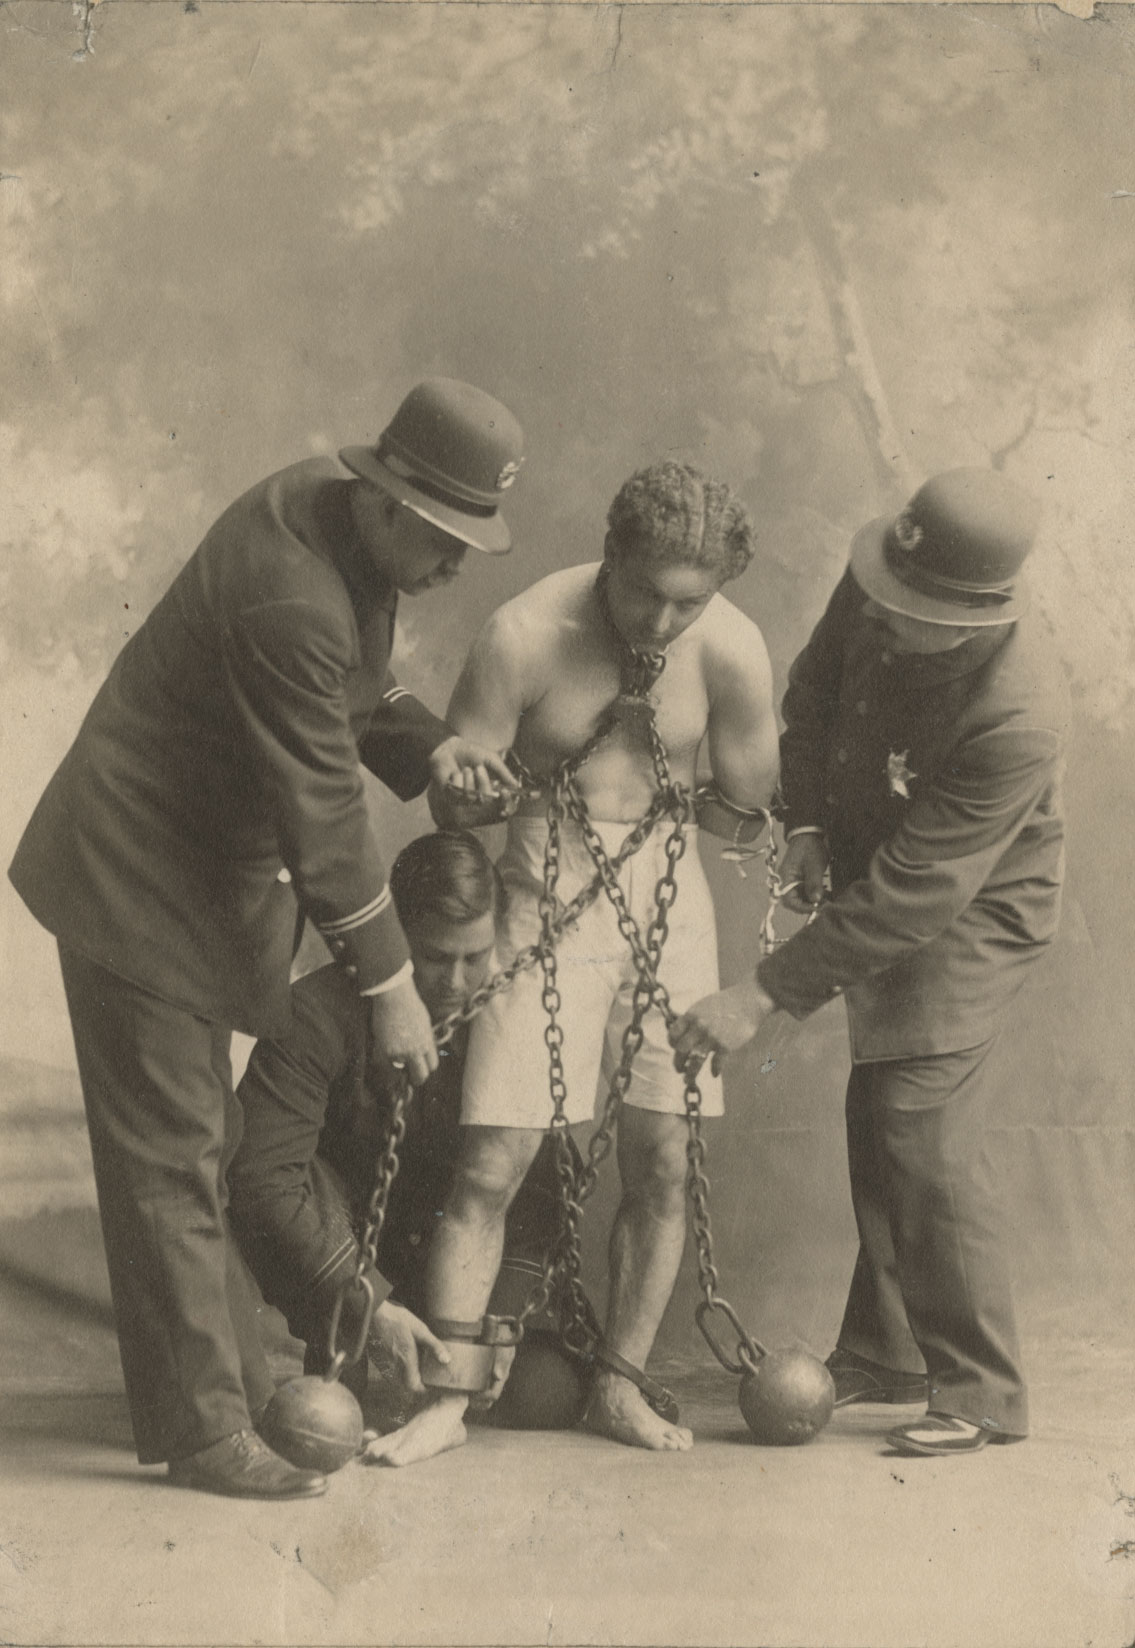 Houdini: Illusionist and collector